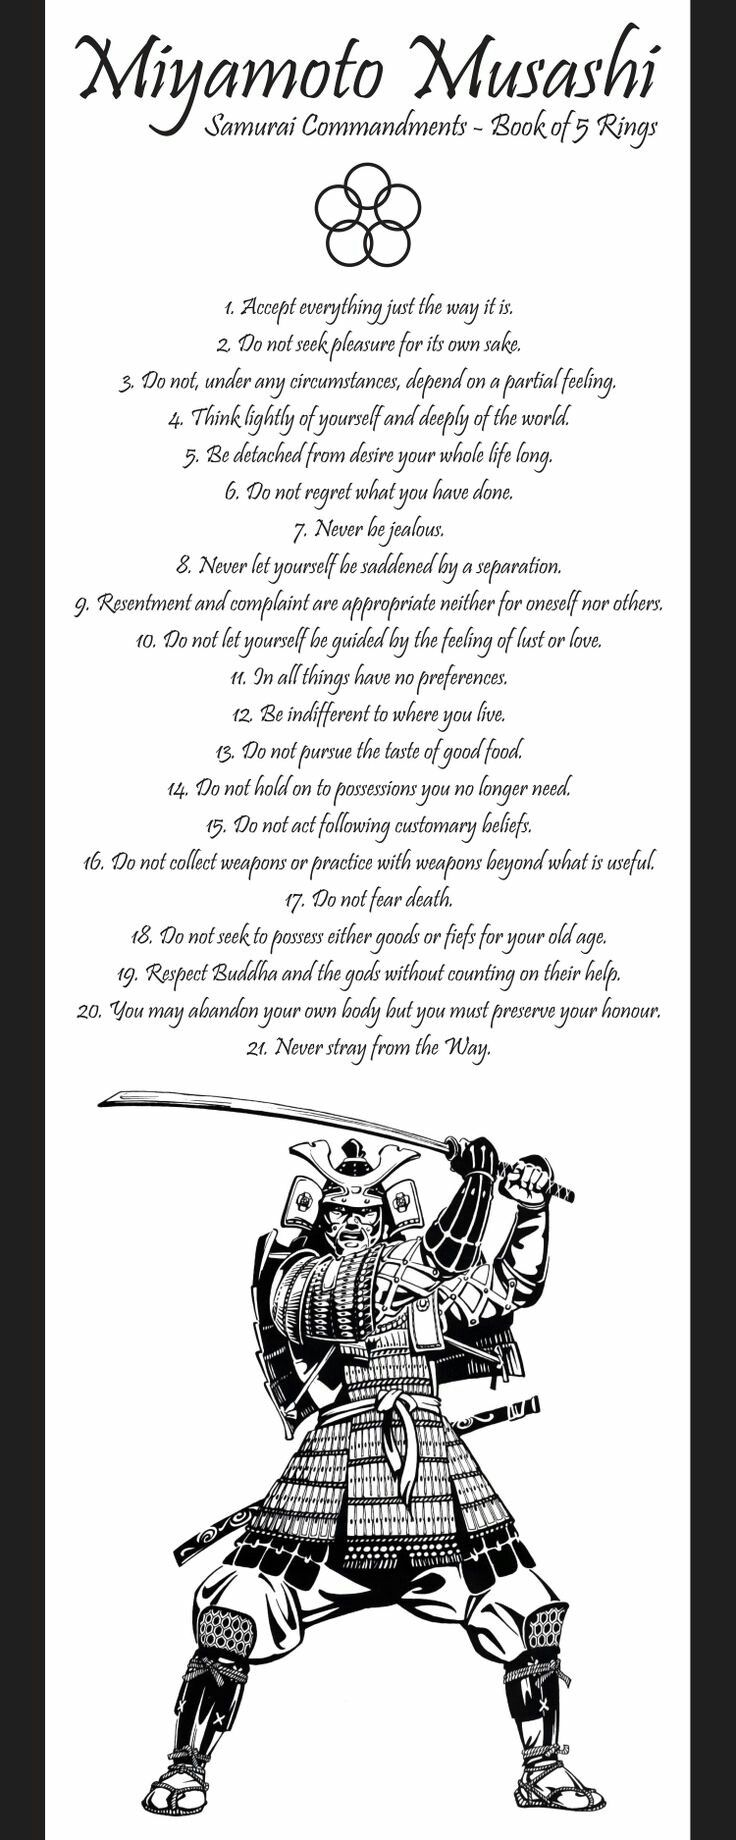 Ninja Commandments